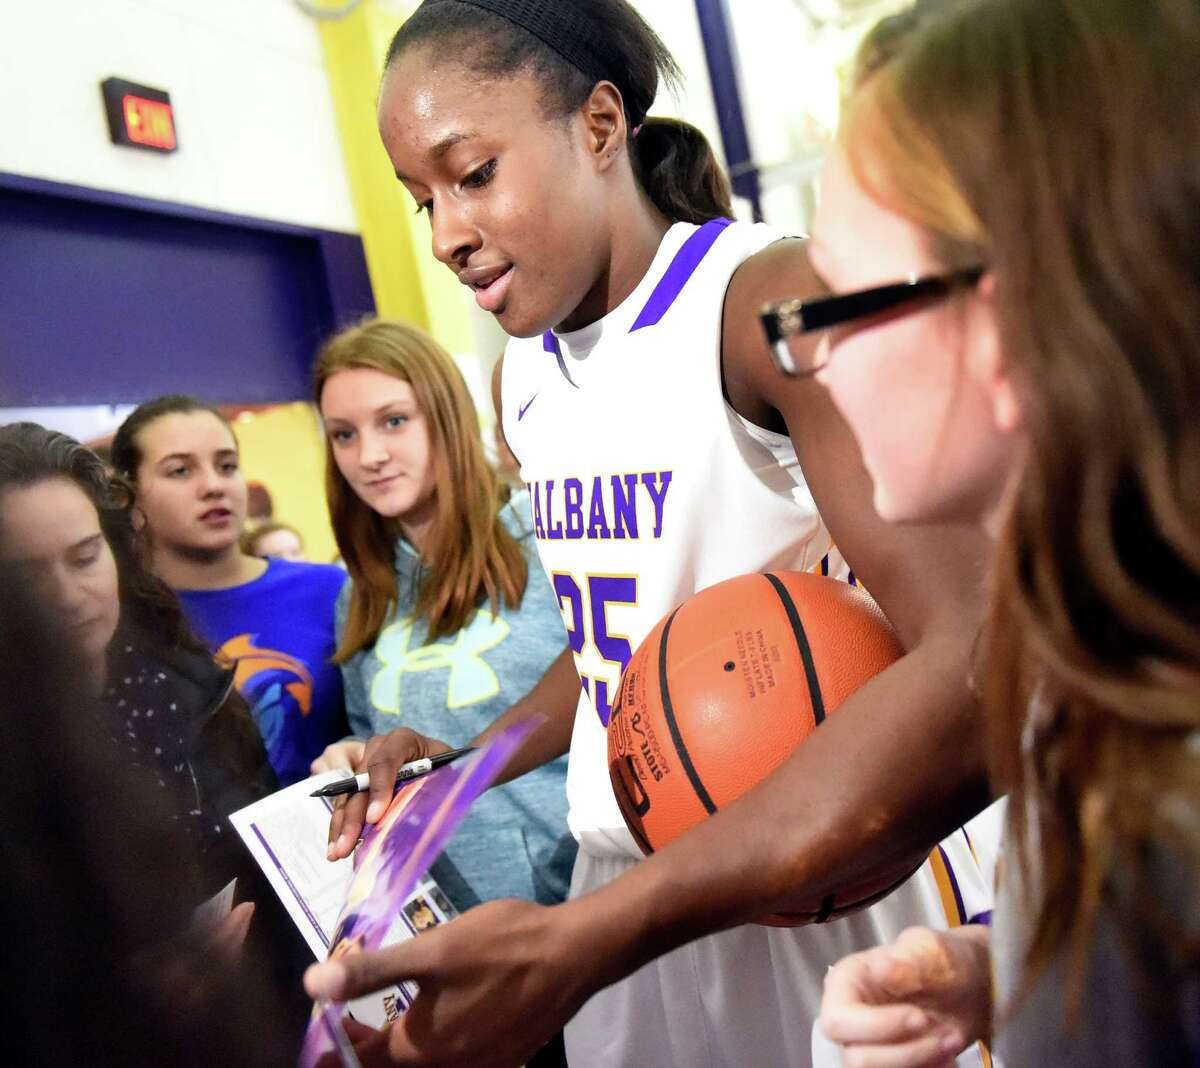 UAlbany's Shereesha Richards, center, signs autographs after reaching 2,000 career points in their basketball game against Vermont on Saturday, Jan. 9, 2016, at SEFCU Arena in Albany, N.Y. UAlbany won 77-42. (Cindy Schultz / Times Union)